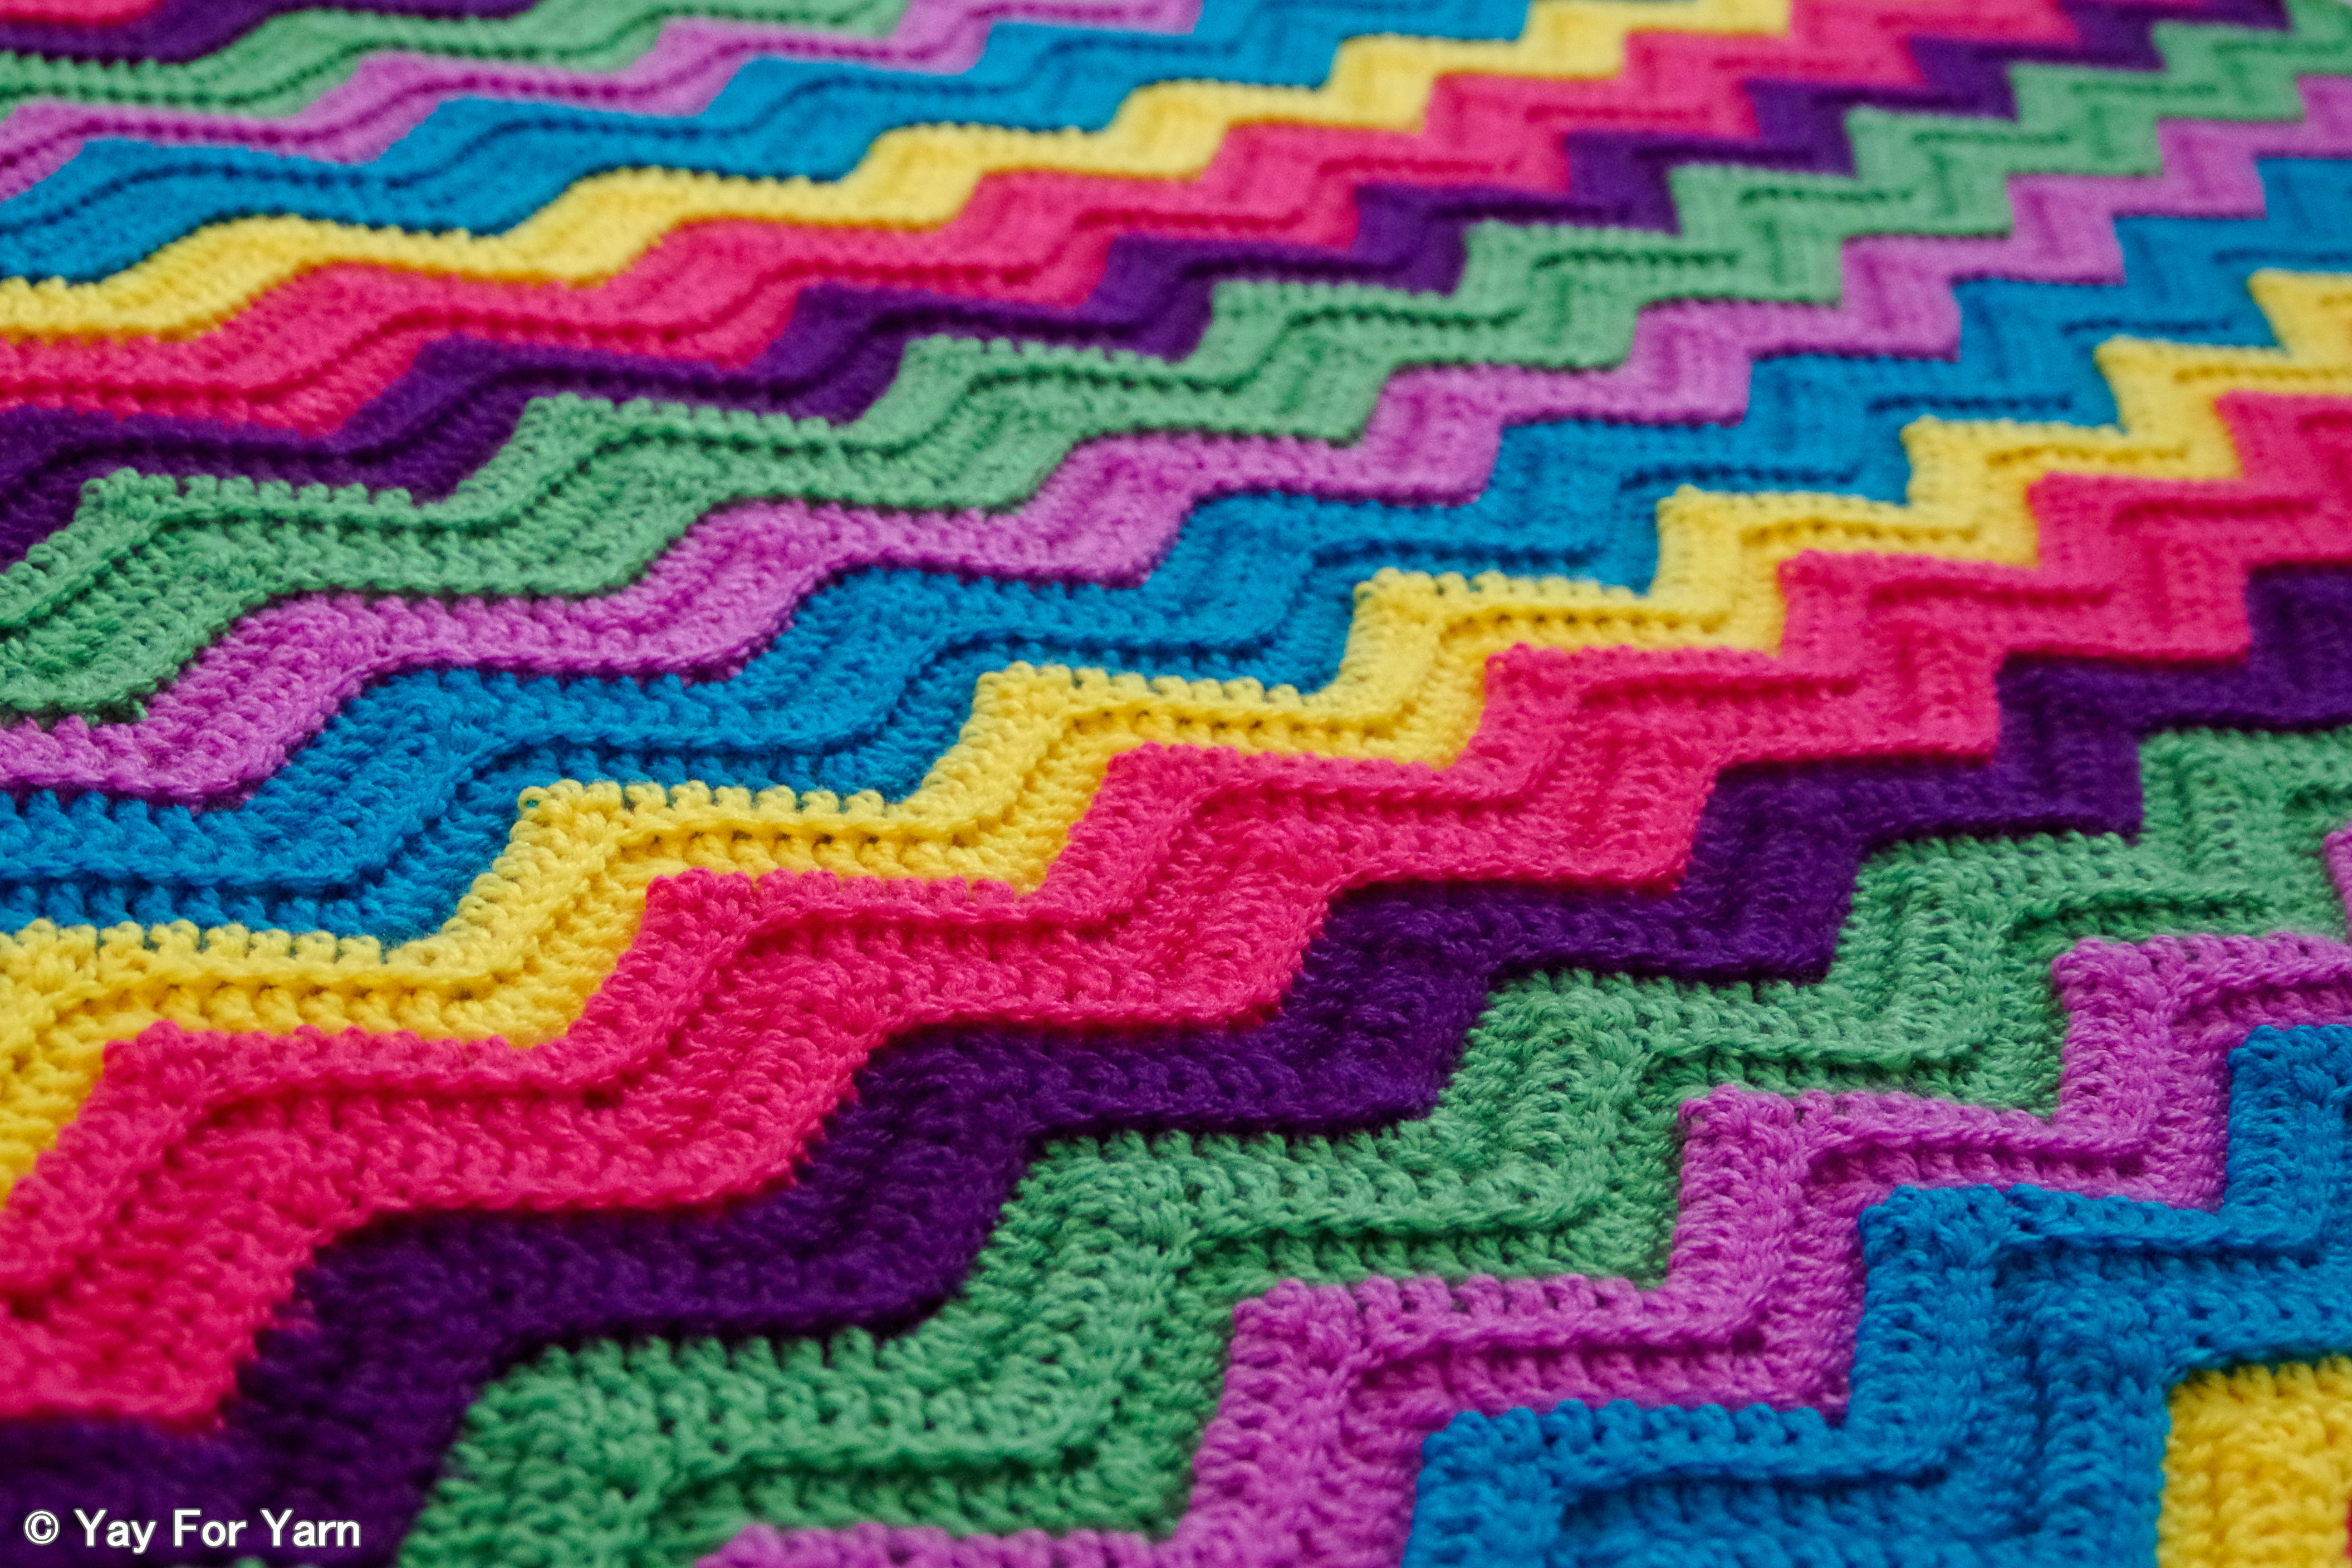 Crochet Afghan Patterns Best Of Rainbow Ridge Afghan – Free Crochet Pattern – Yay for Yarn Of New 40 Pics Crochet Afghan Patterns